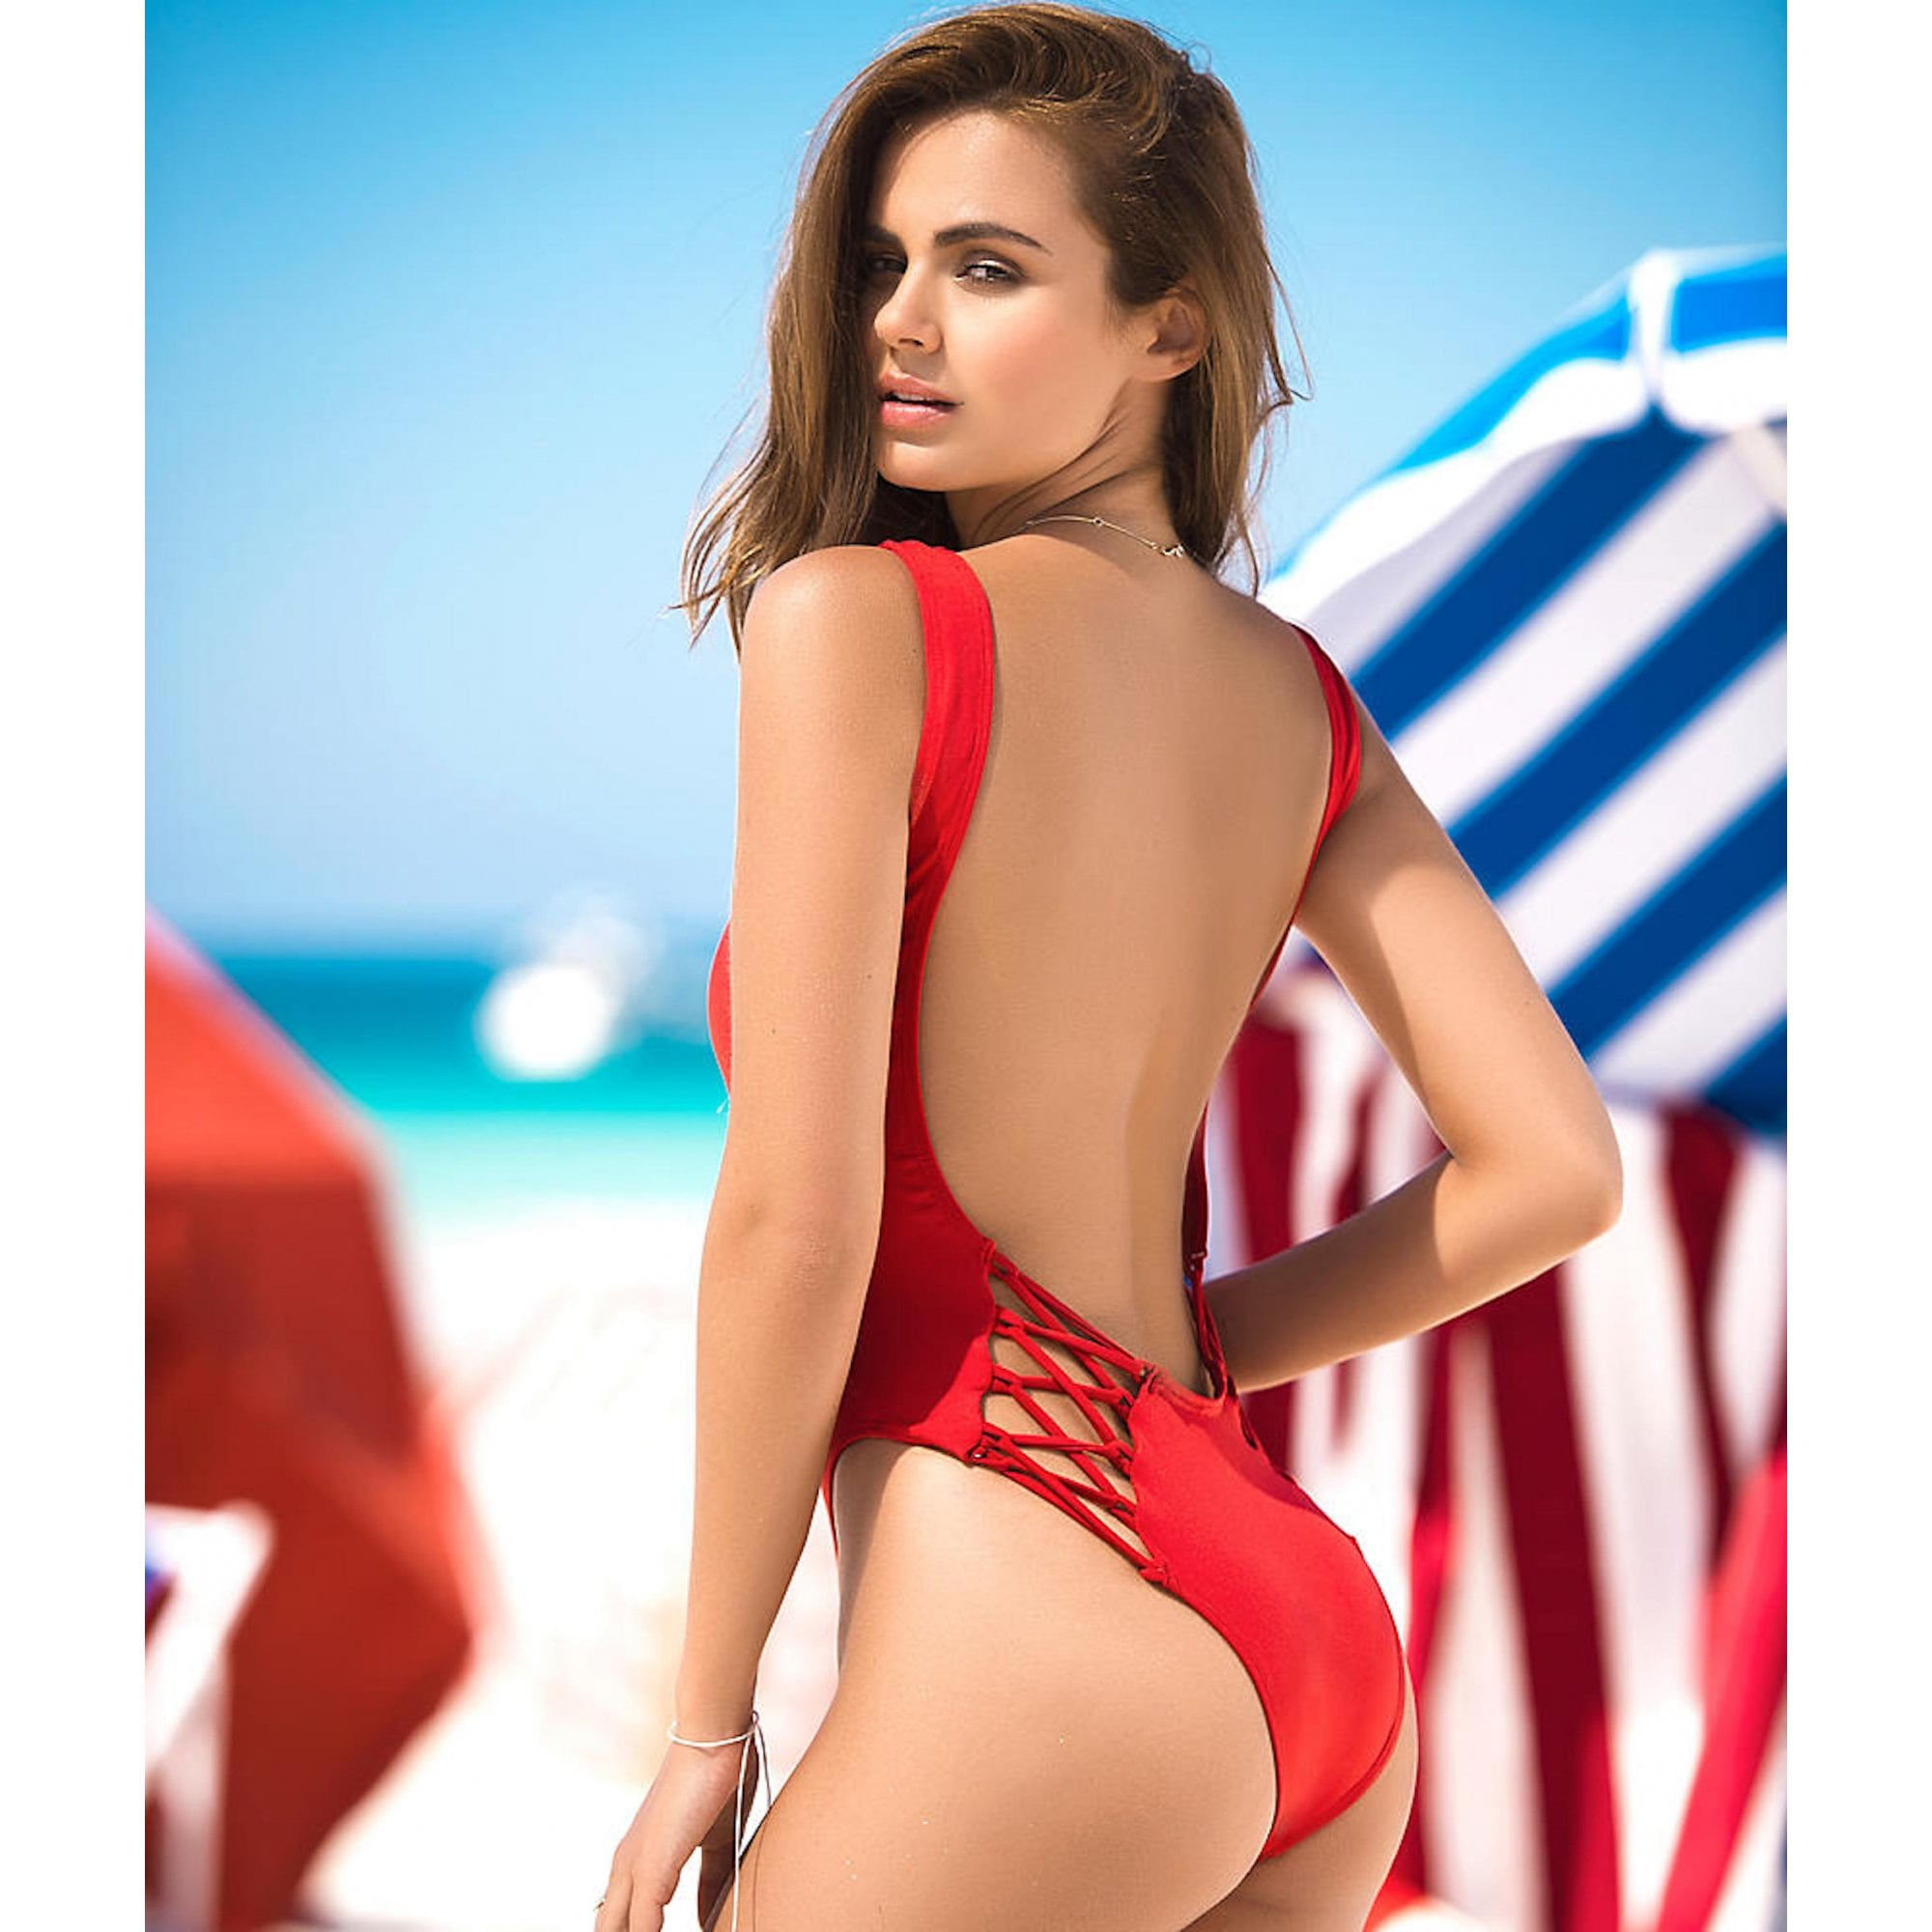 af6980d90b75 Red One Piece Swimsuit with Lace Up Panel - For Her... from The Luxe ...